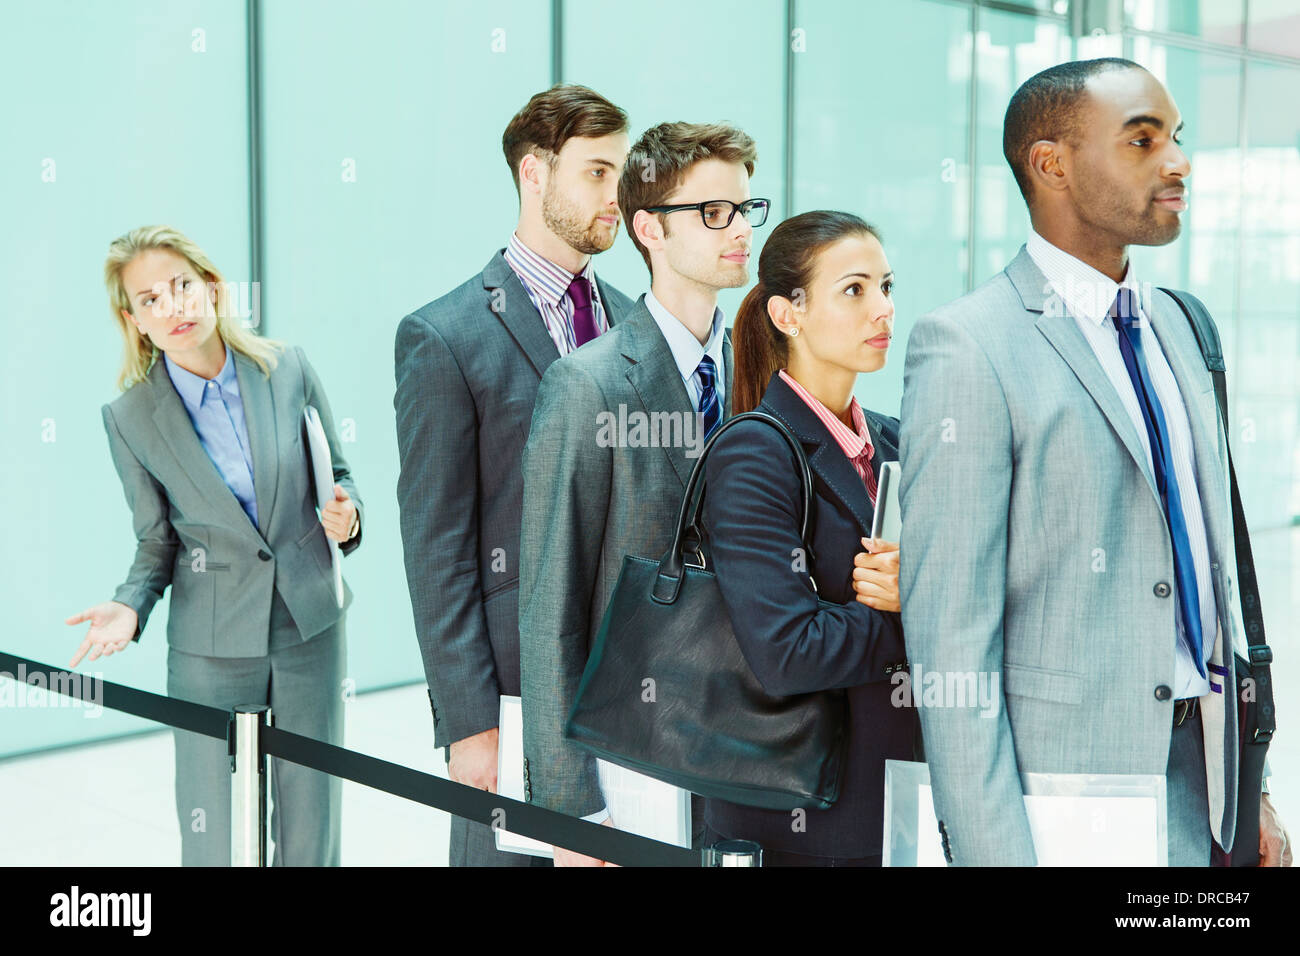 Business people waiting in line - Stock Image